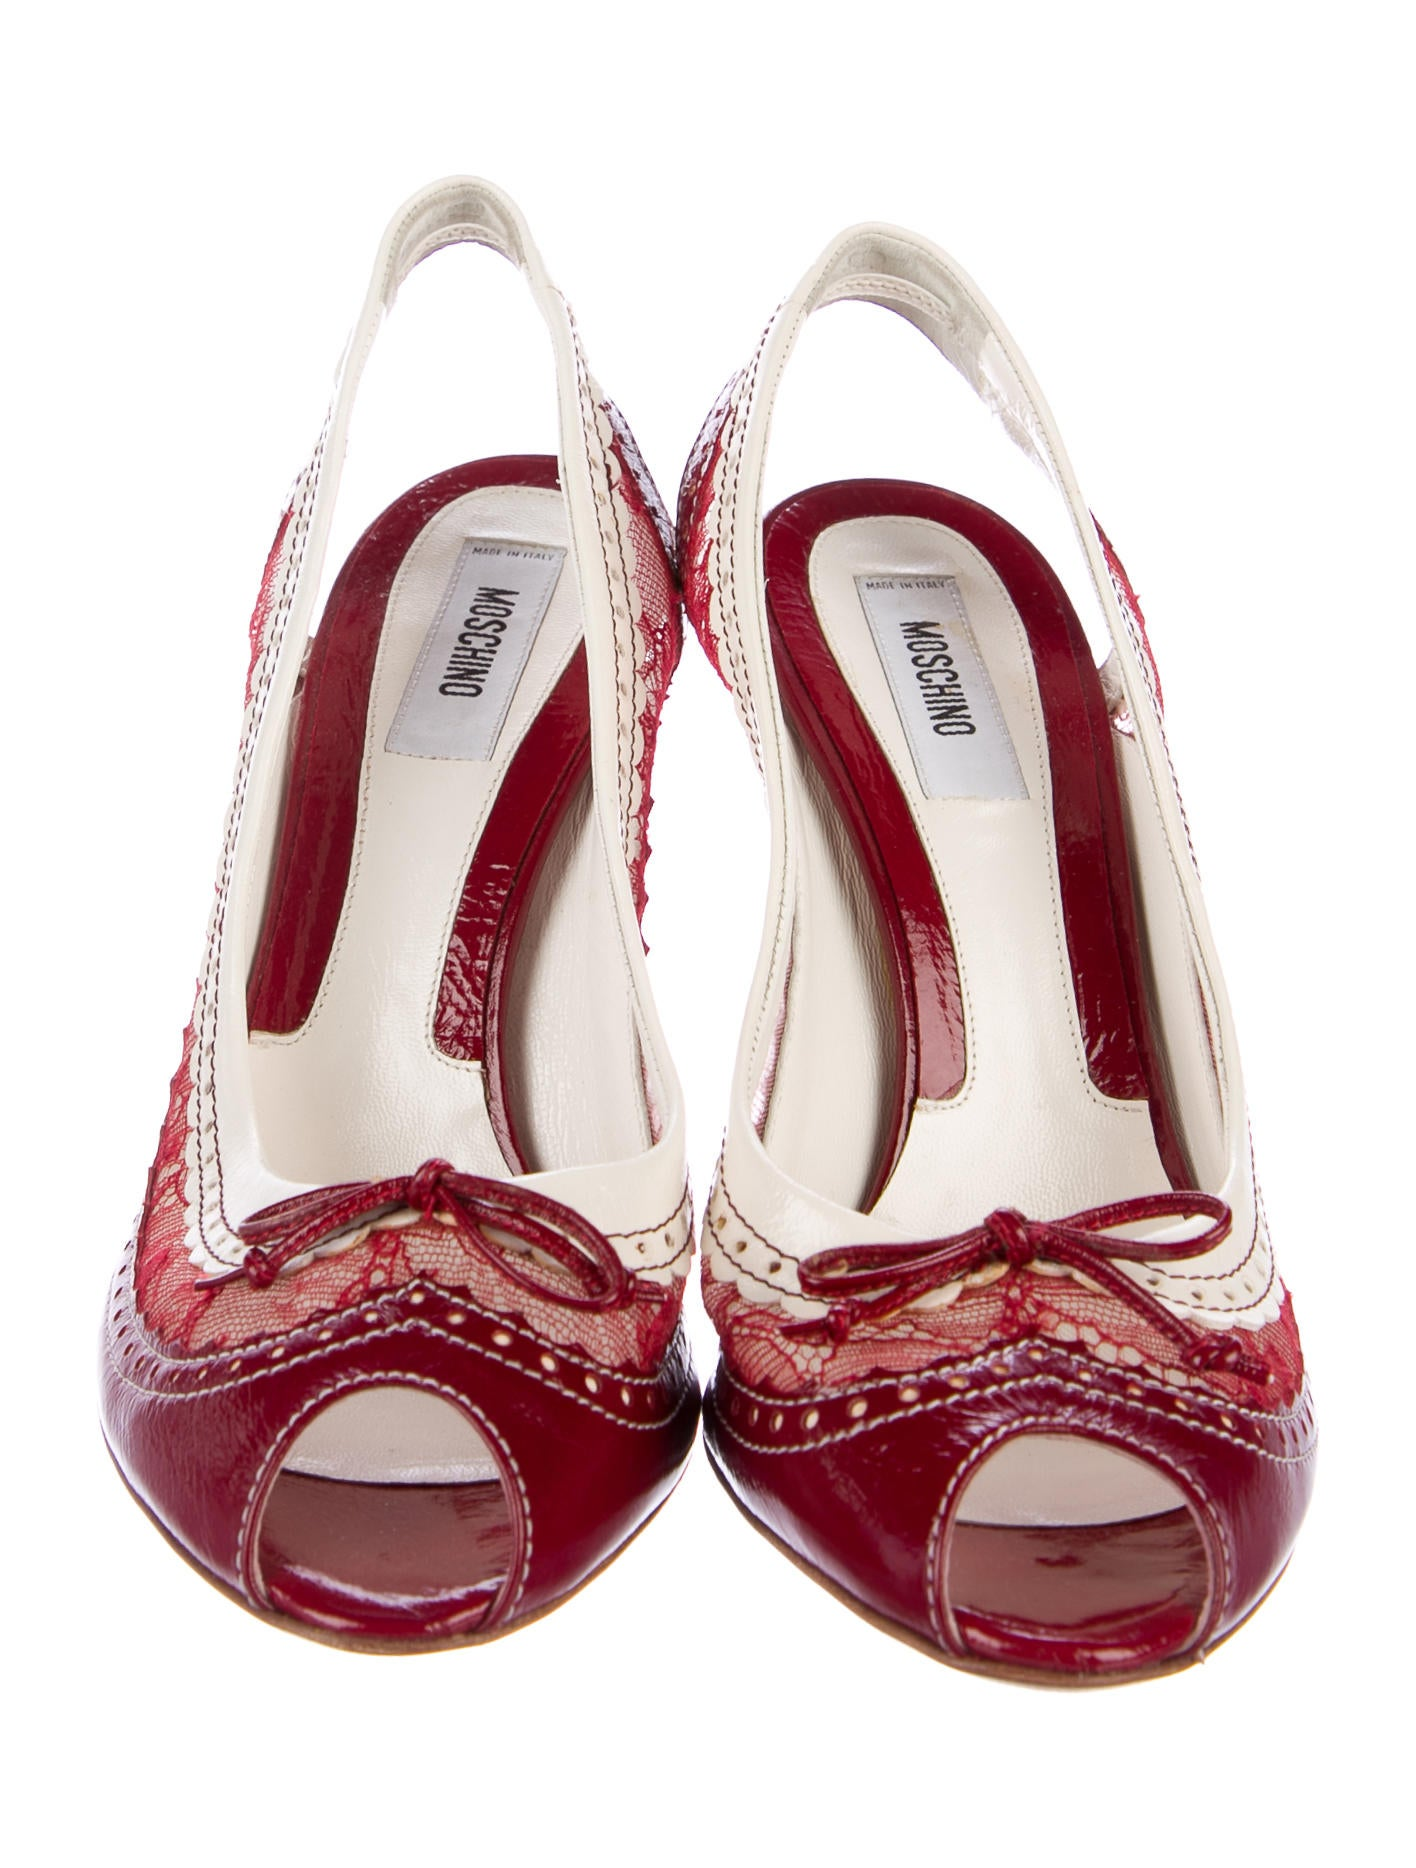 Moschino Brogue Slingback Pumps clearance Inexpensive discount manchester great sale with paypal cheap online nicekicks cheap price RjaKL